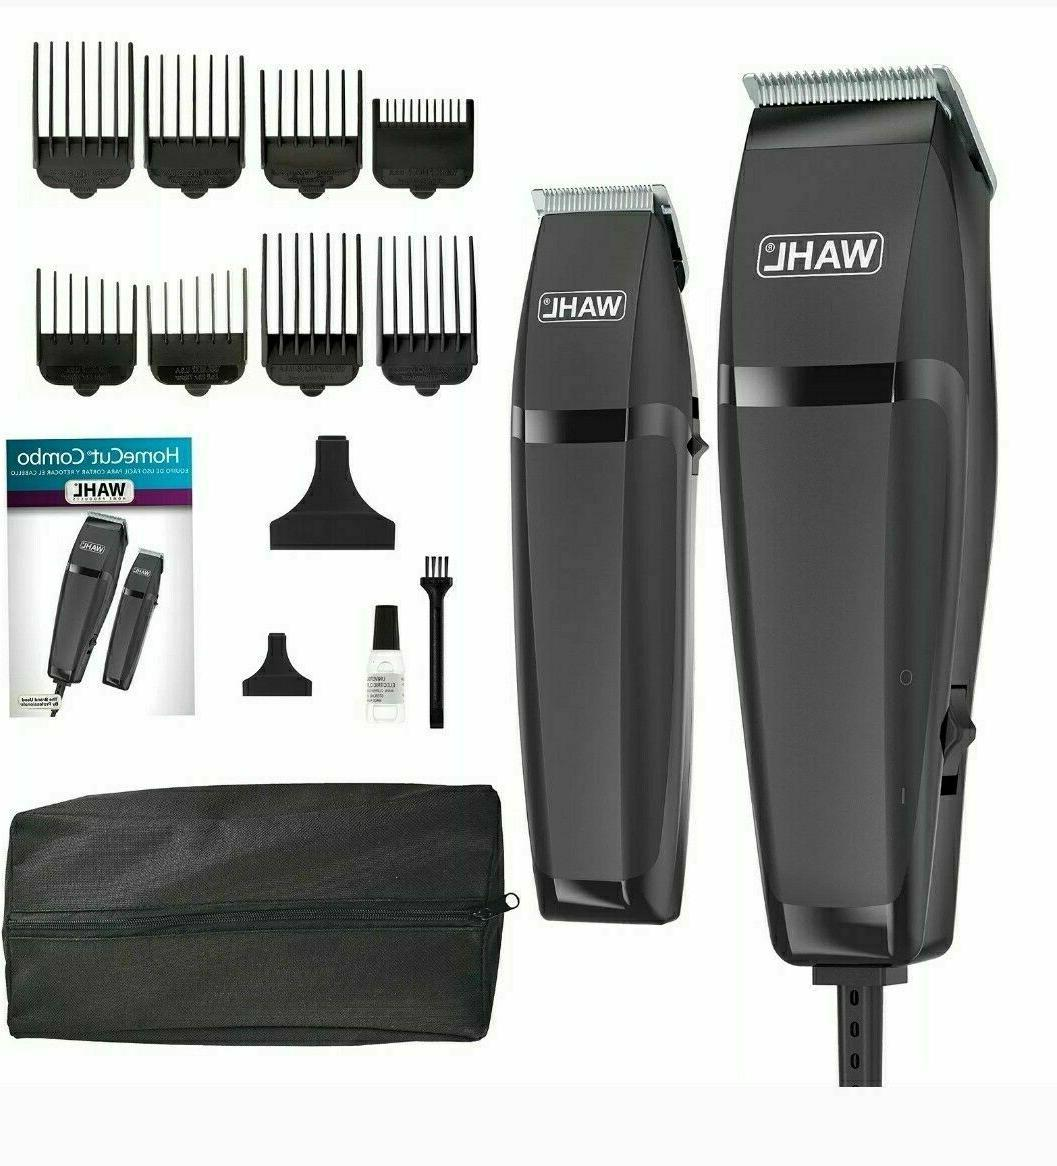 professional hair clippers trimmer kit hair cutting